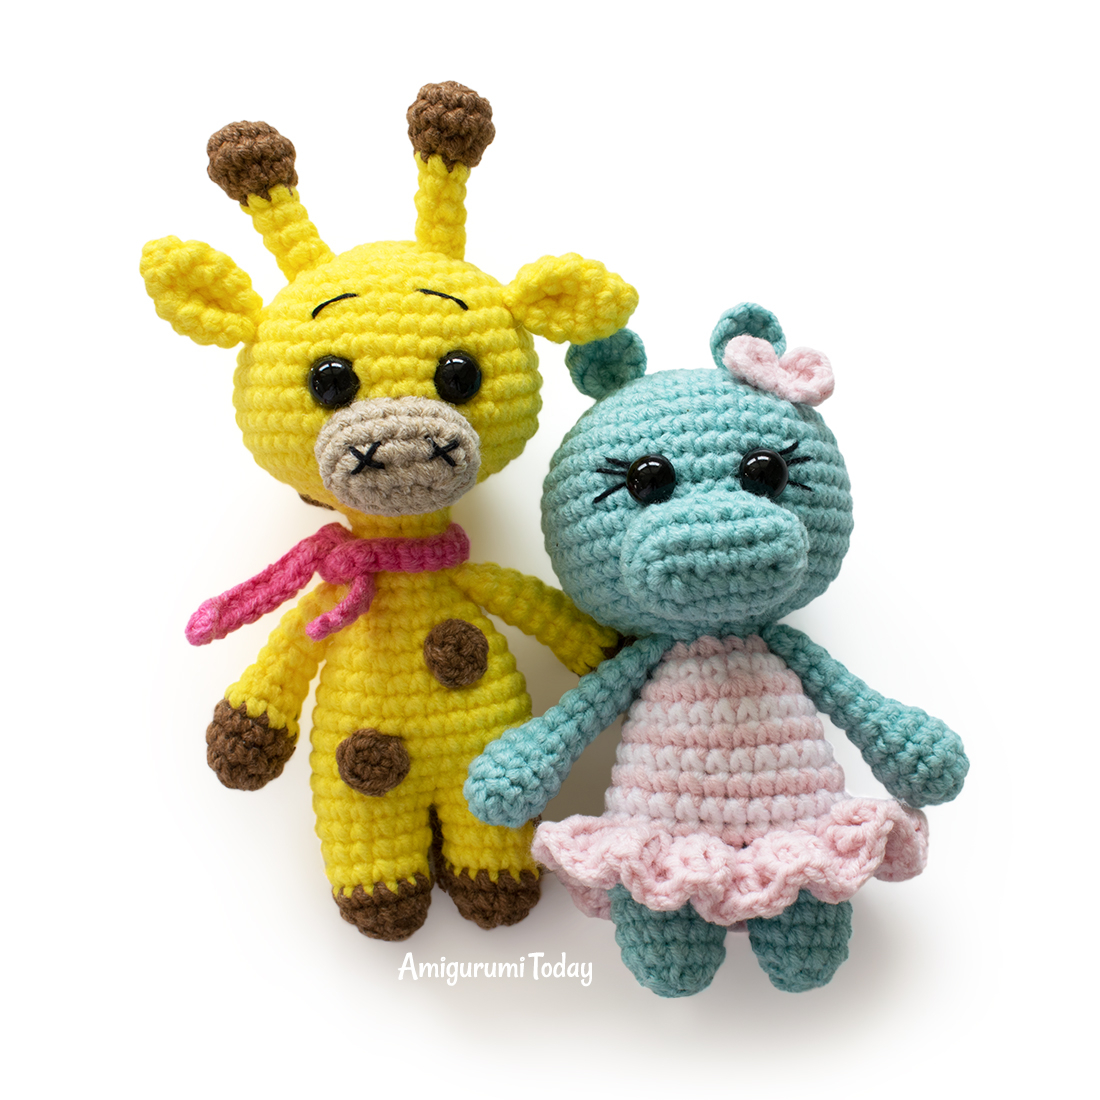 Amigurumi doll in butterfly costume - Amigurumi Today | 1100x1100